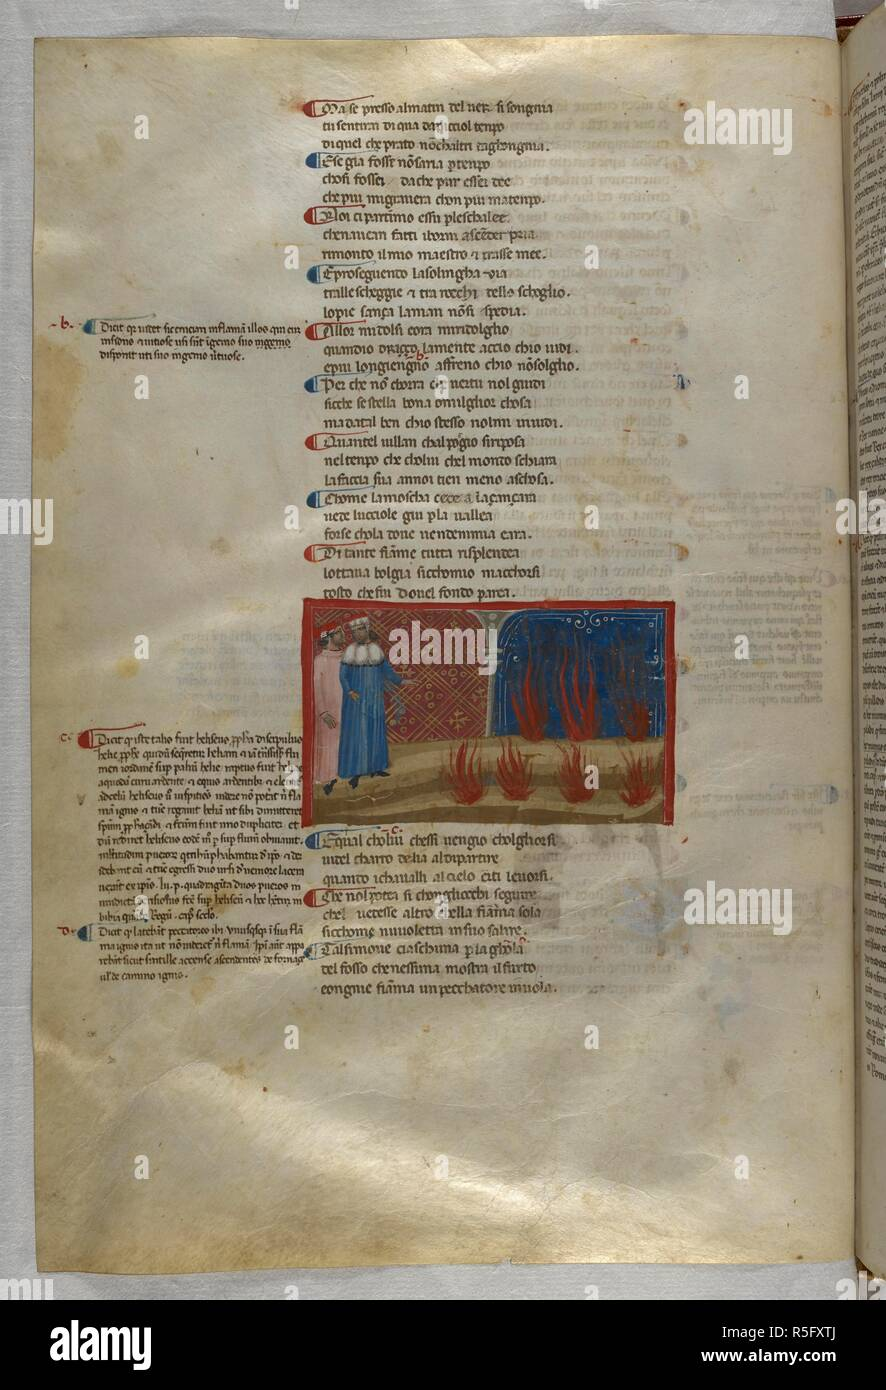 Inferno: Dante and Virgil before the flames of the false counsellor. Dante Alighieri, Divina Commedia ( The Divine Comedy ), with a commentary in Latin. 1st half of the 14th century. Source: Egerton 943, f.46v. Language: Italian, Latin. - Stock Image